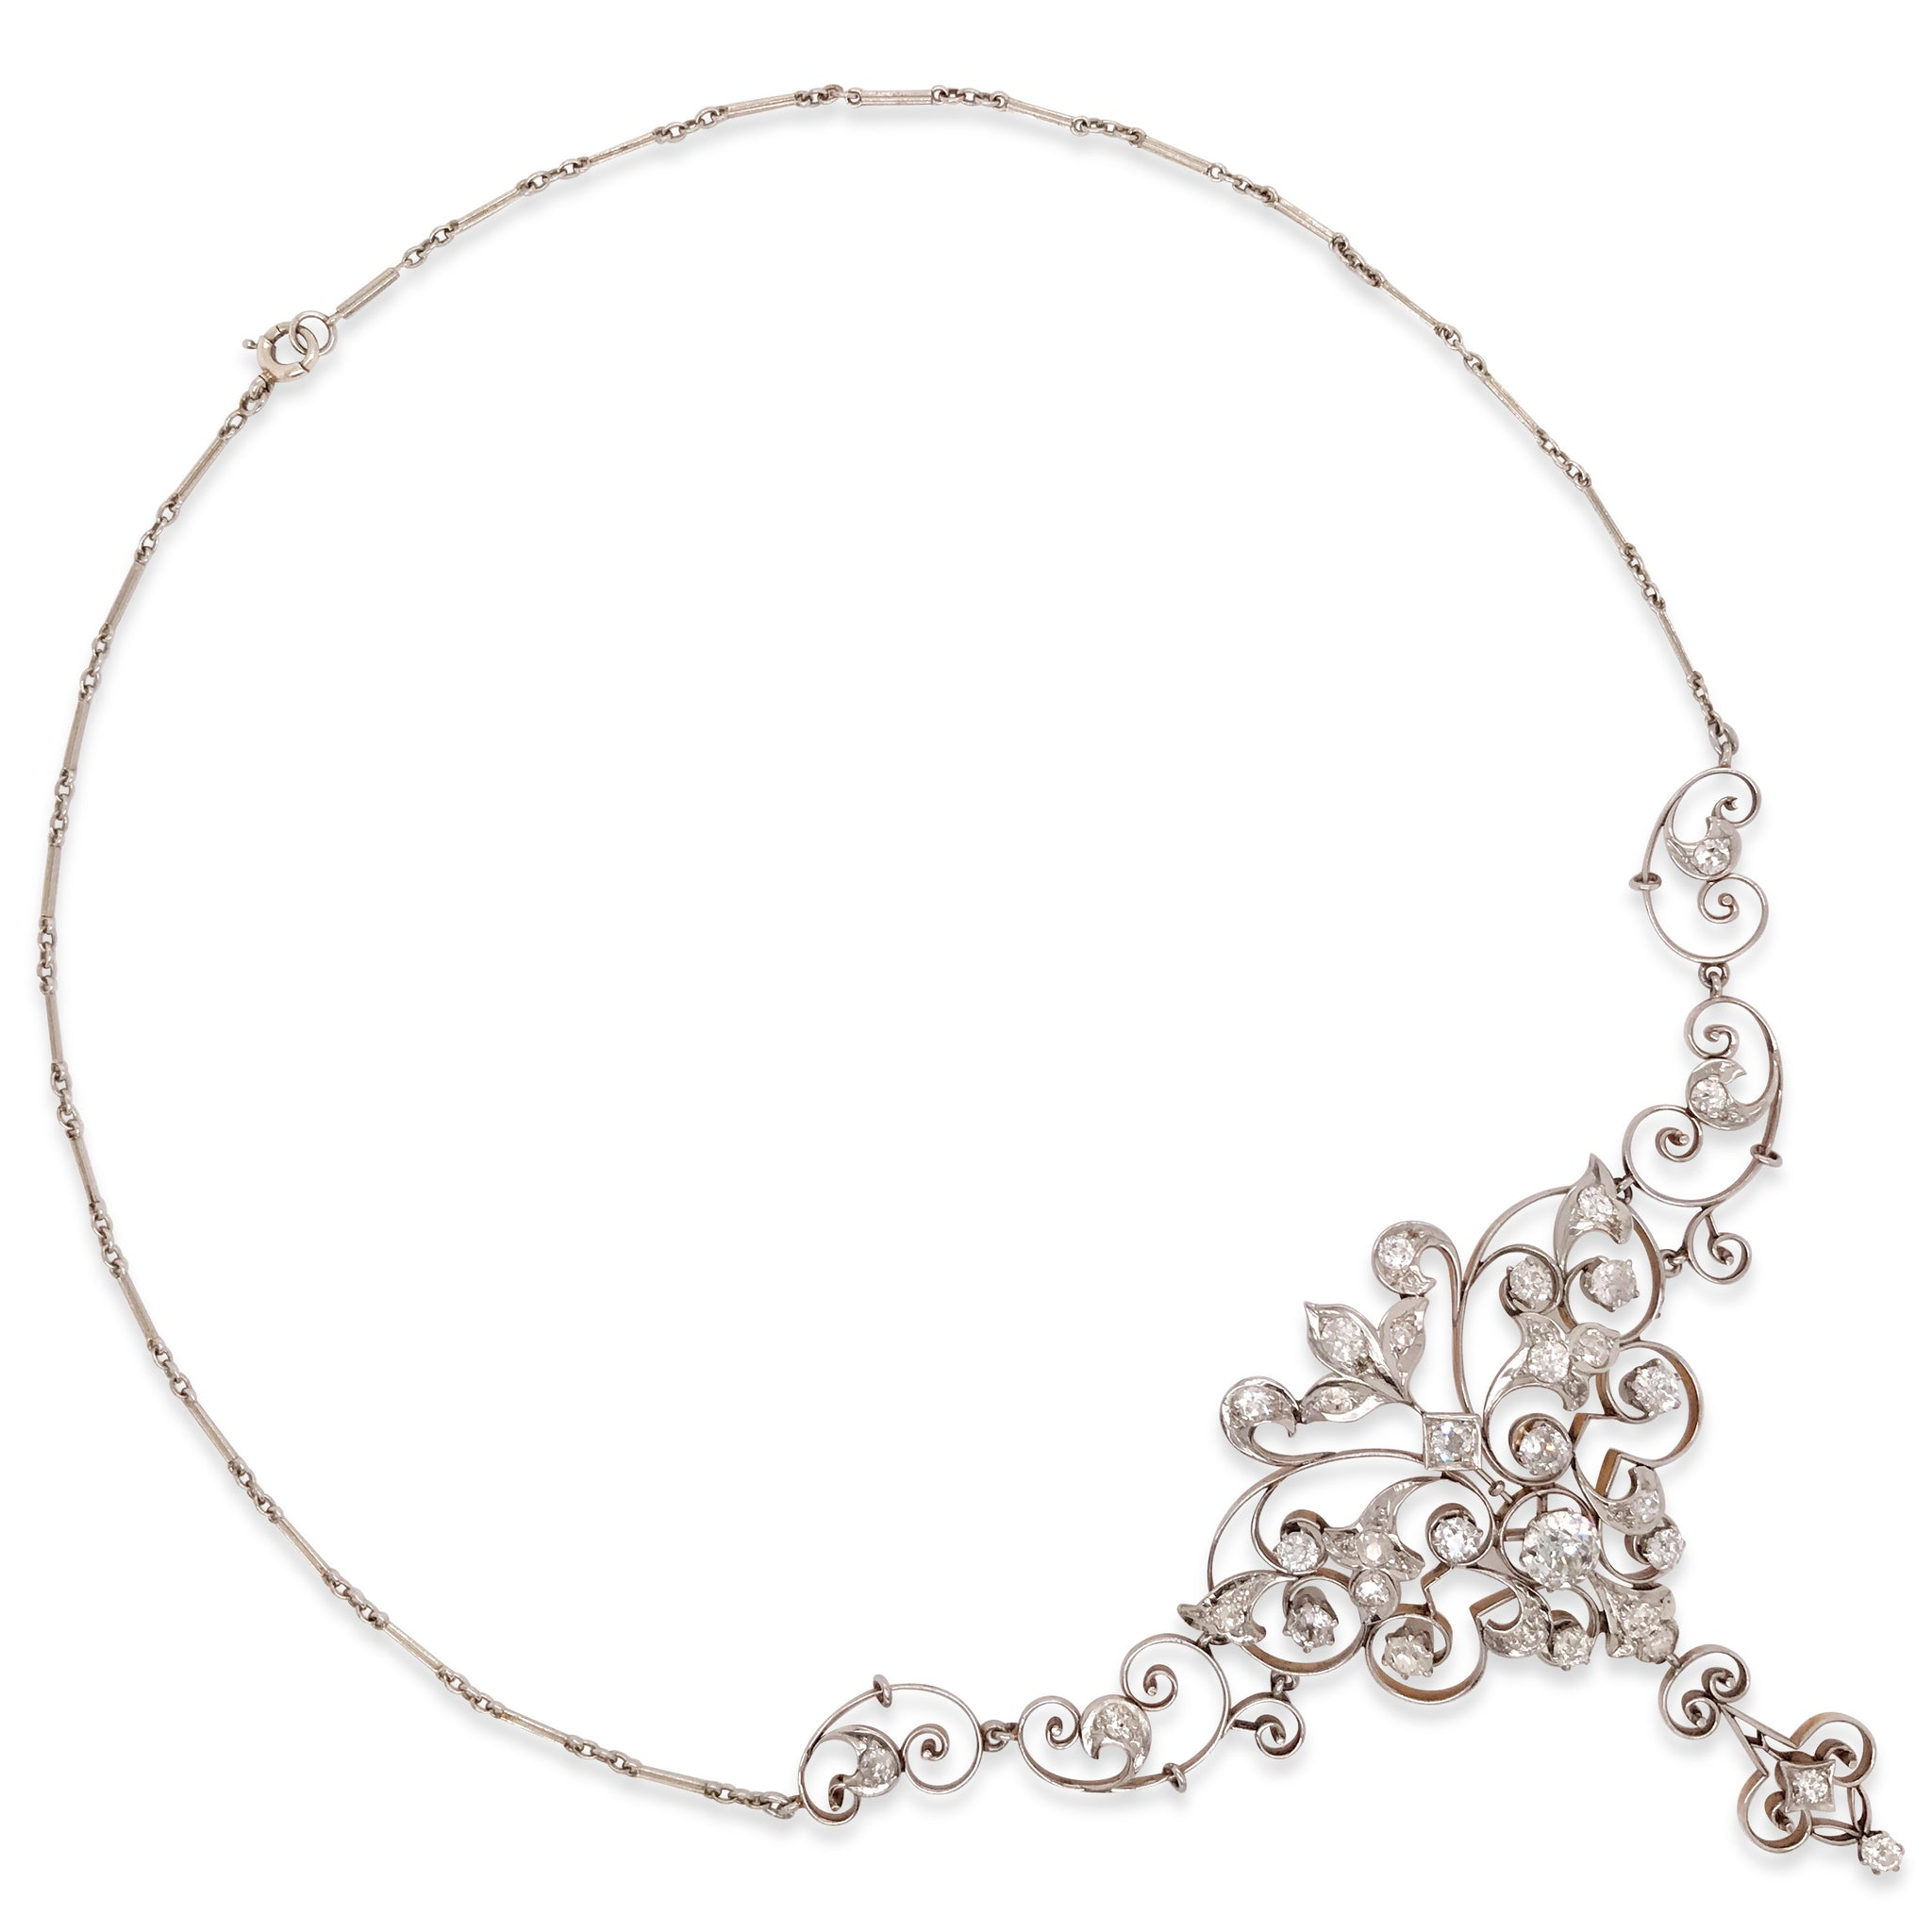 Antique Platinum-topped Gold and Diamond Necklace - Lueur Jewelry